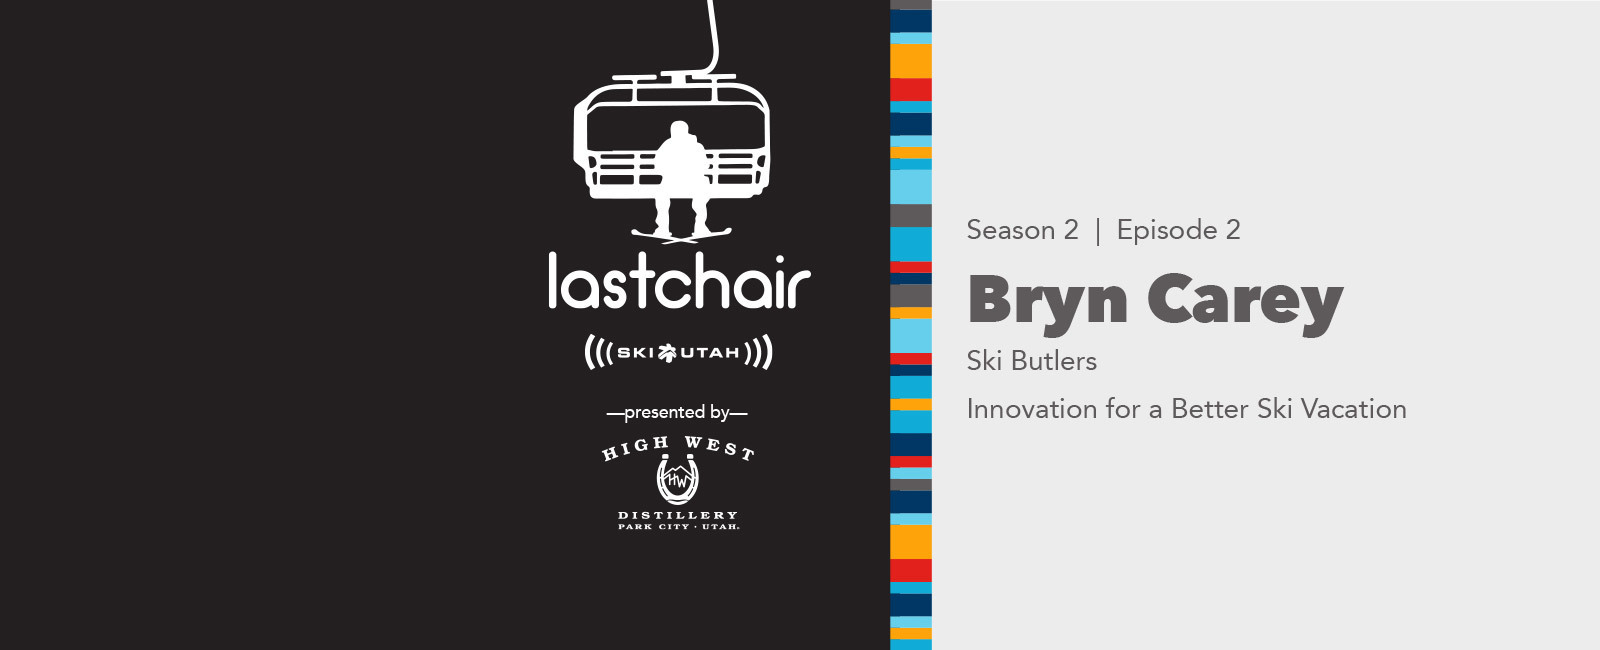 Bryn Carey: Innovation for a Better Ski Vacation